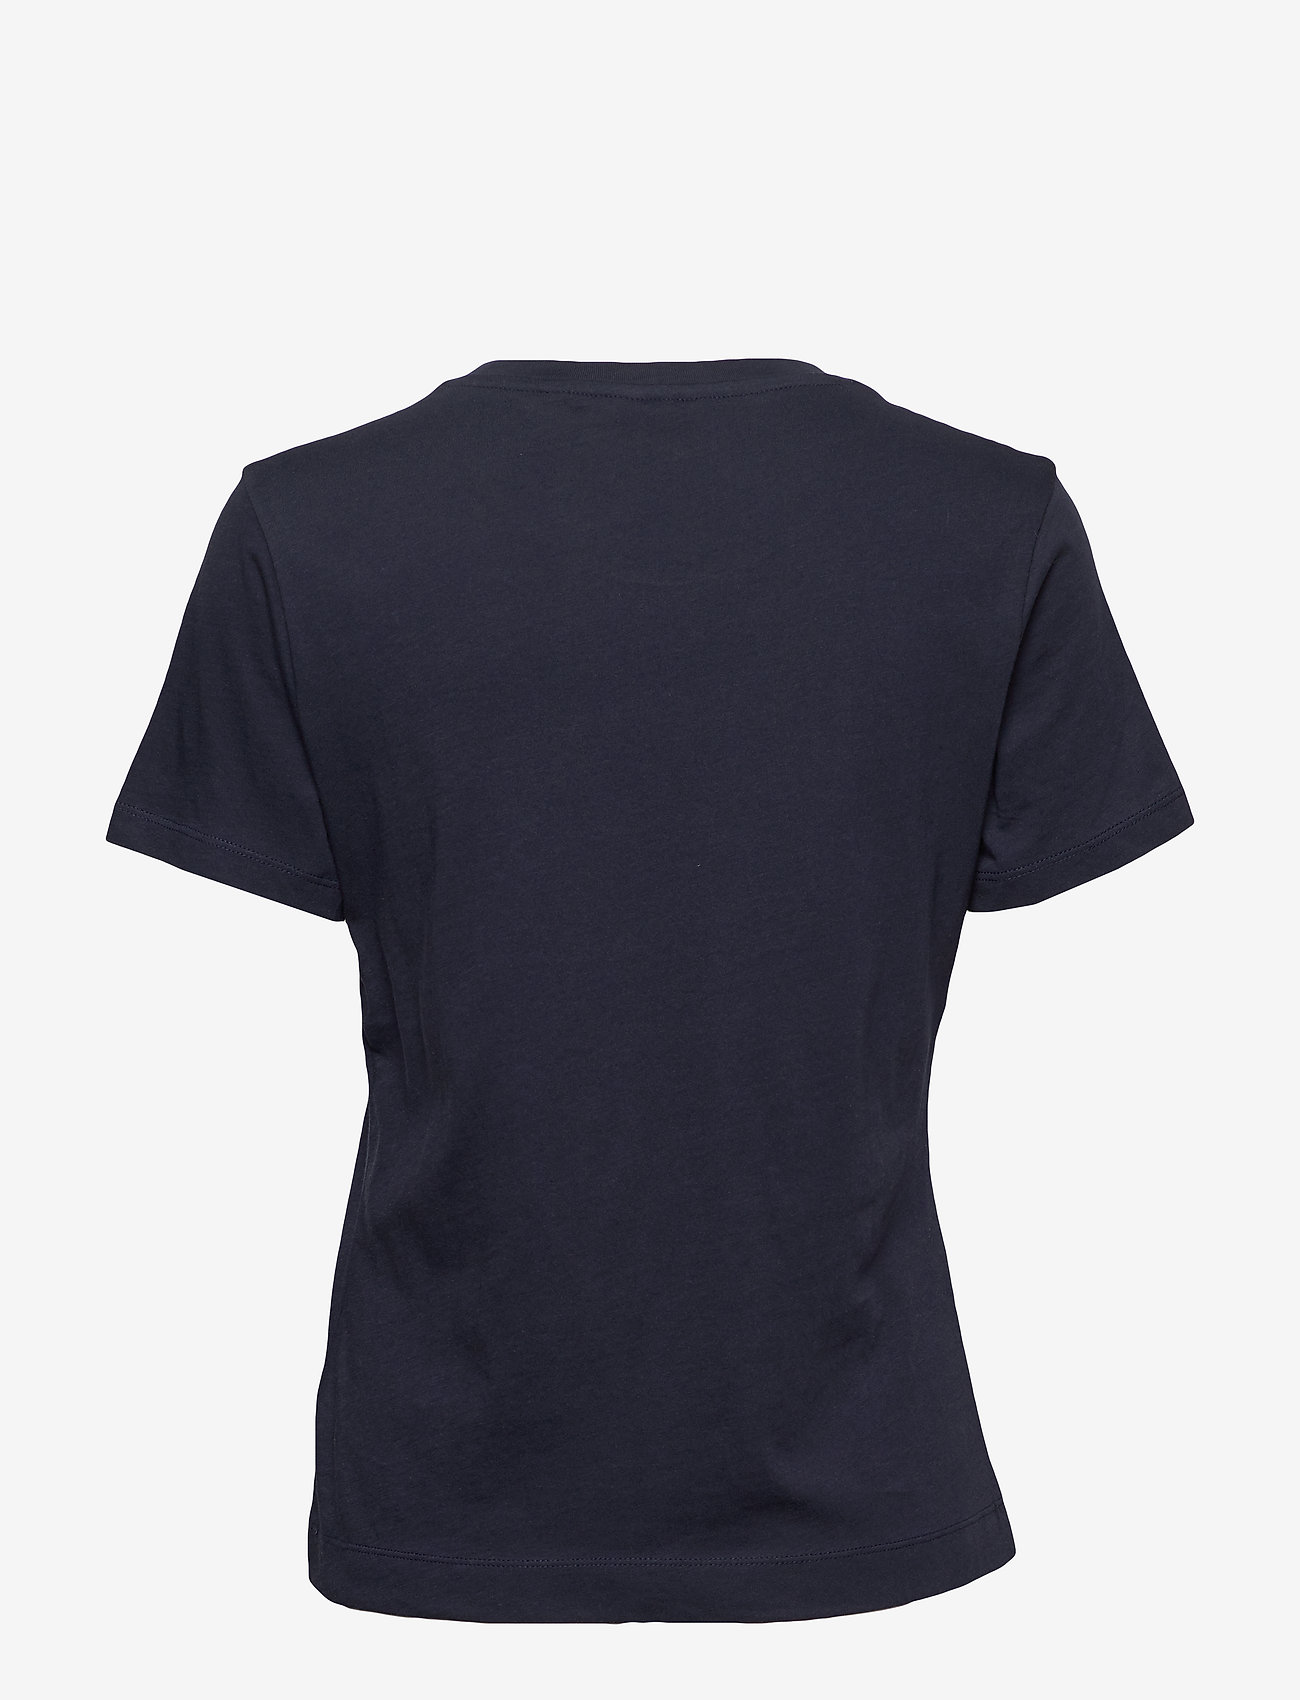 Gant - ORIGINAL SS T-SHIRT - basic t-shirts - evening blue